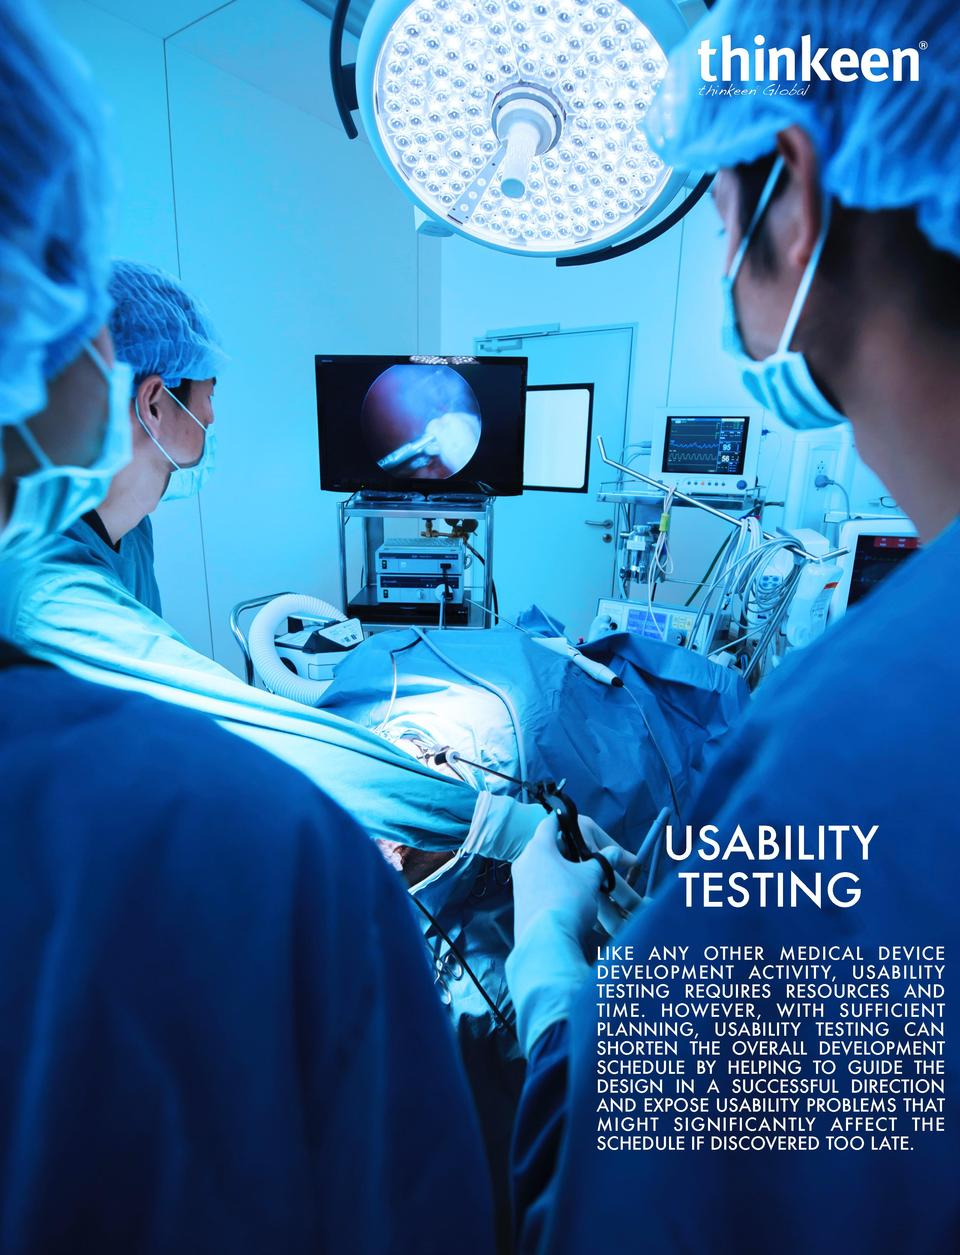 USABILITY TESTING LIKE ANY OTHER MEDICAL DEVICE DEVELOPMENT ACTIVIT Y, USABILIT Y TESTING REQUIRES RESOURCES AND TIME. HOW...